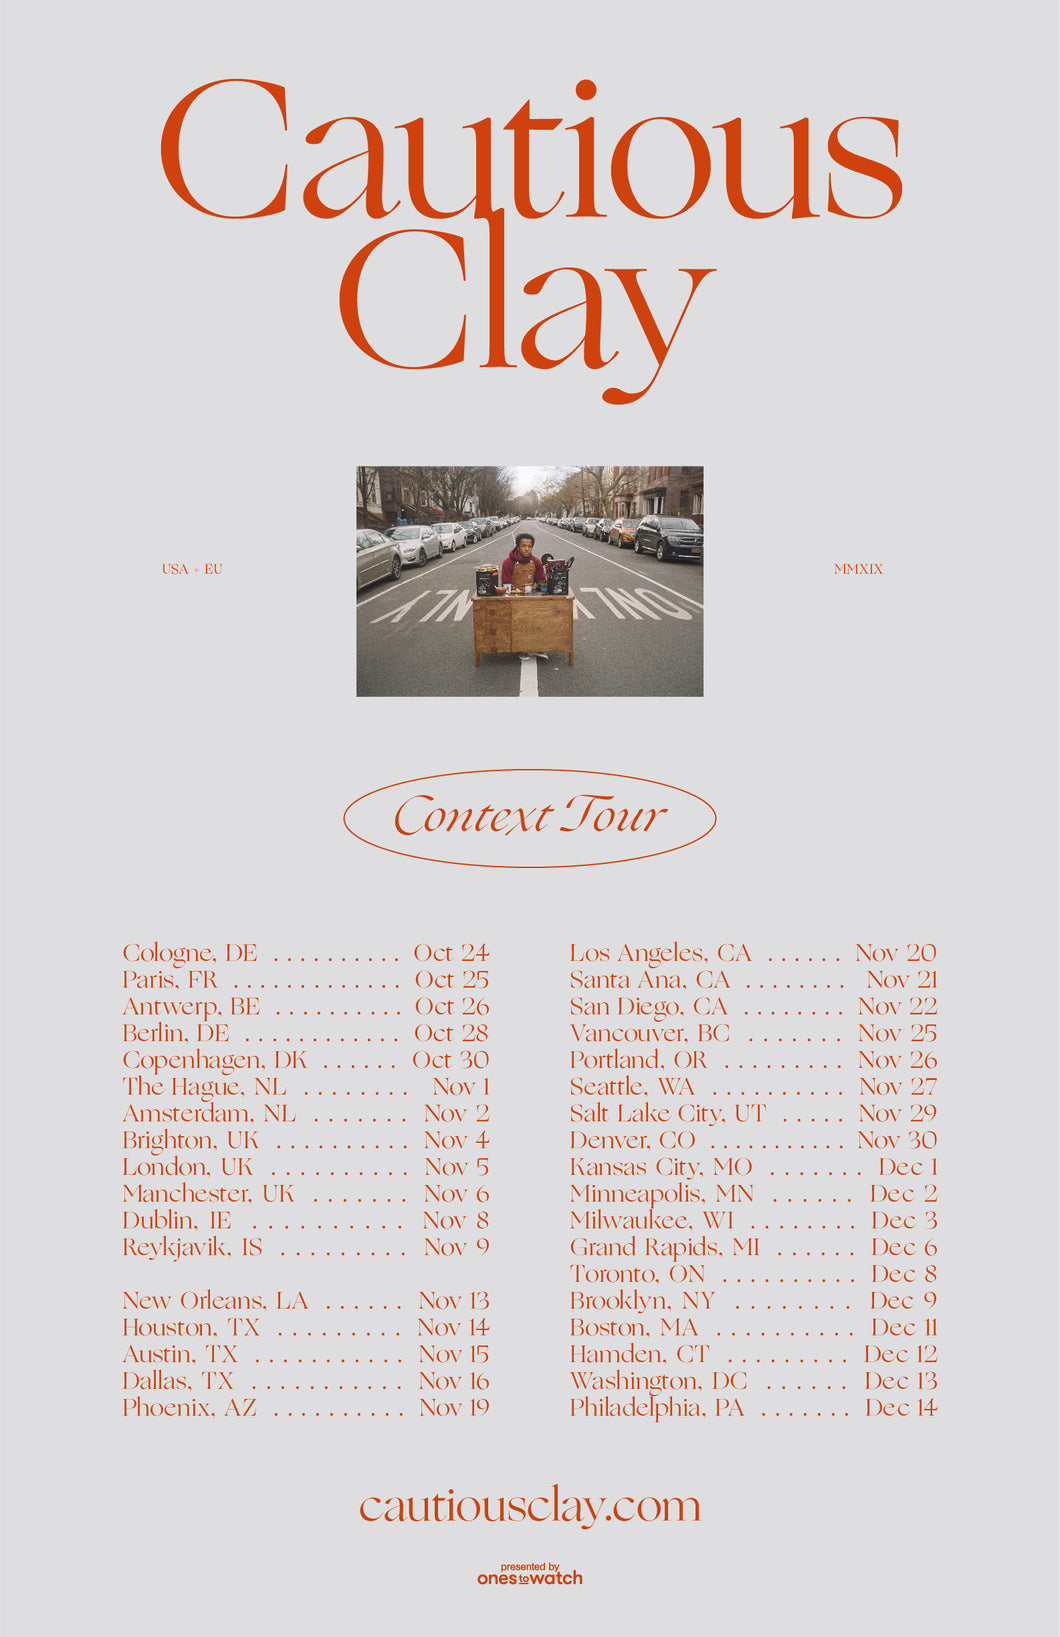 12/01/19 - Kansas City, MO - The Riot Room - Cautious Clay Meet & Greet Upgrade Package